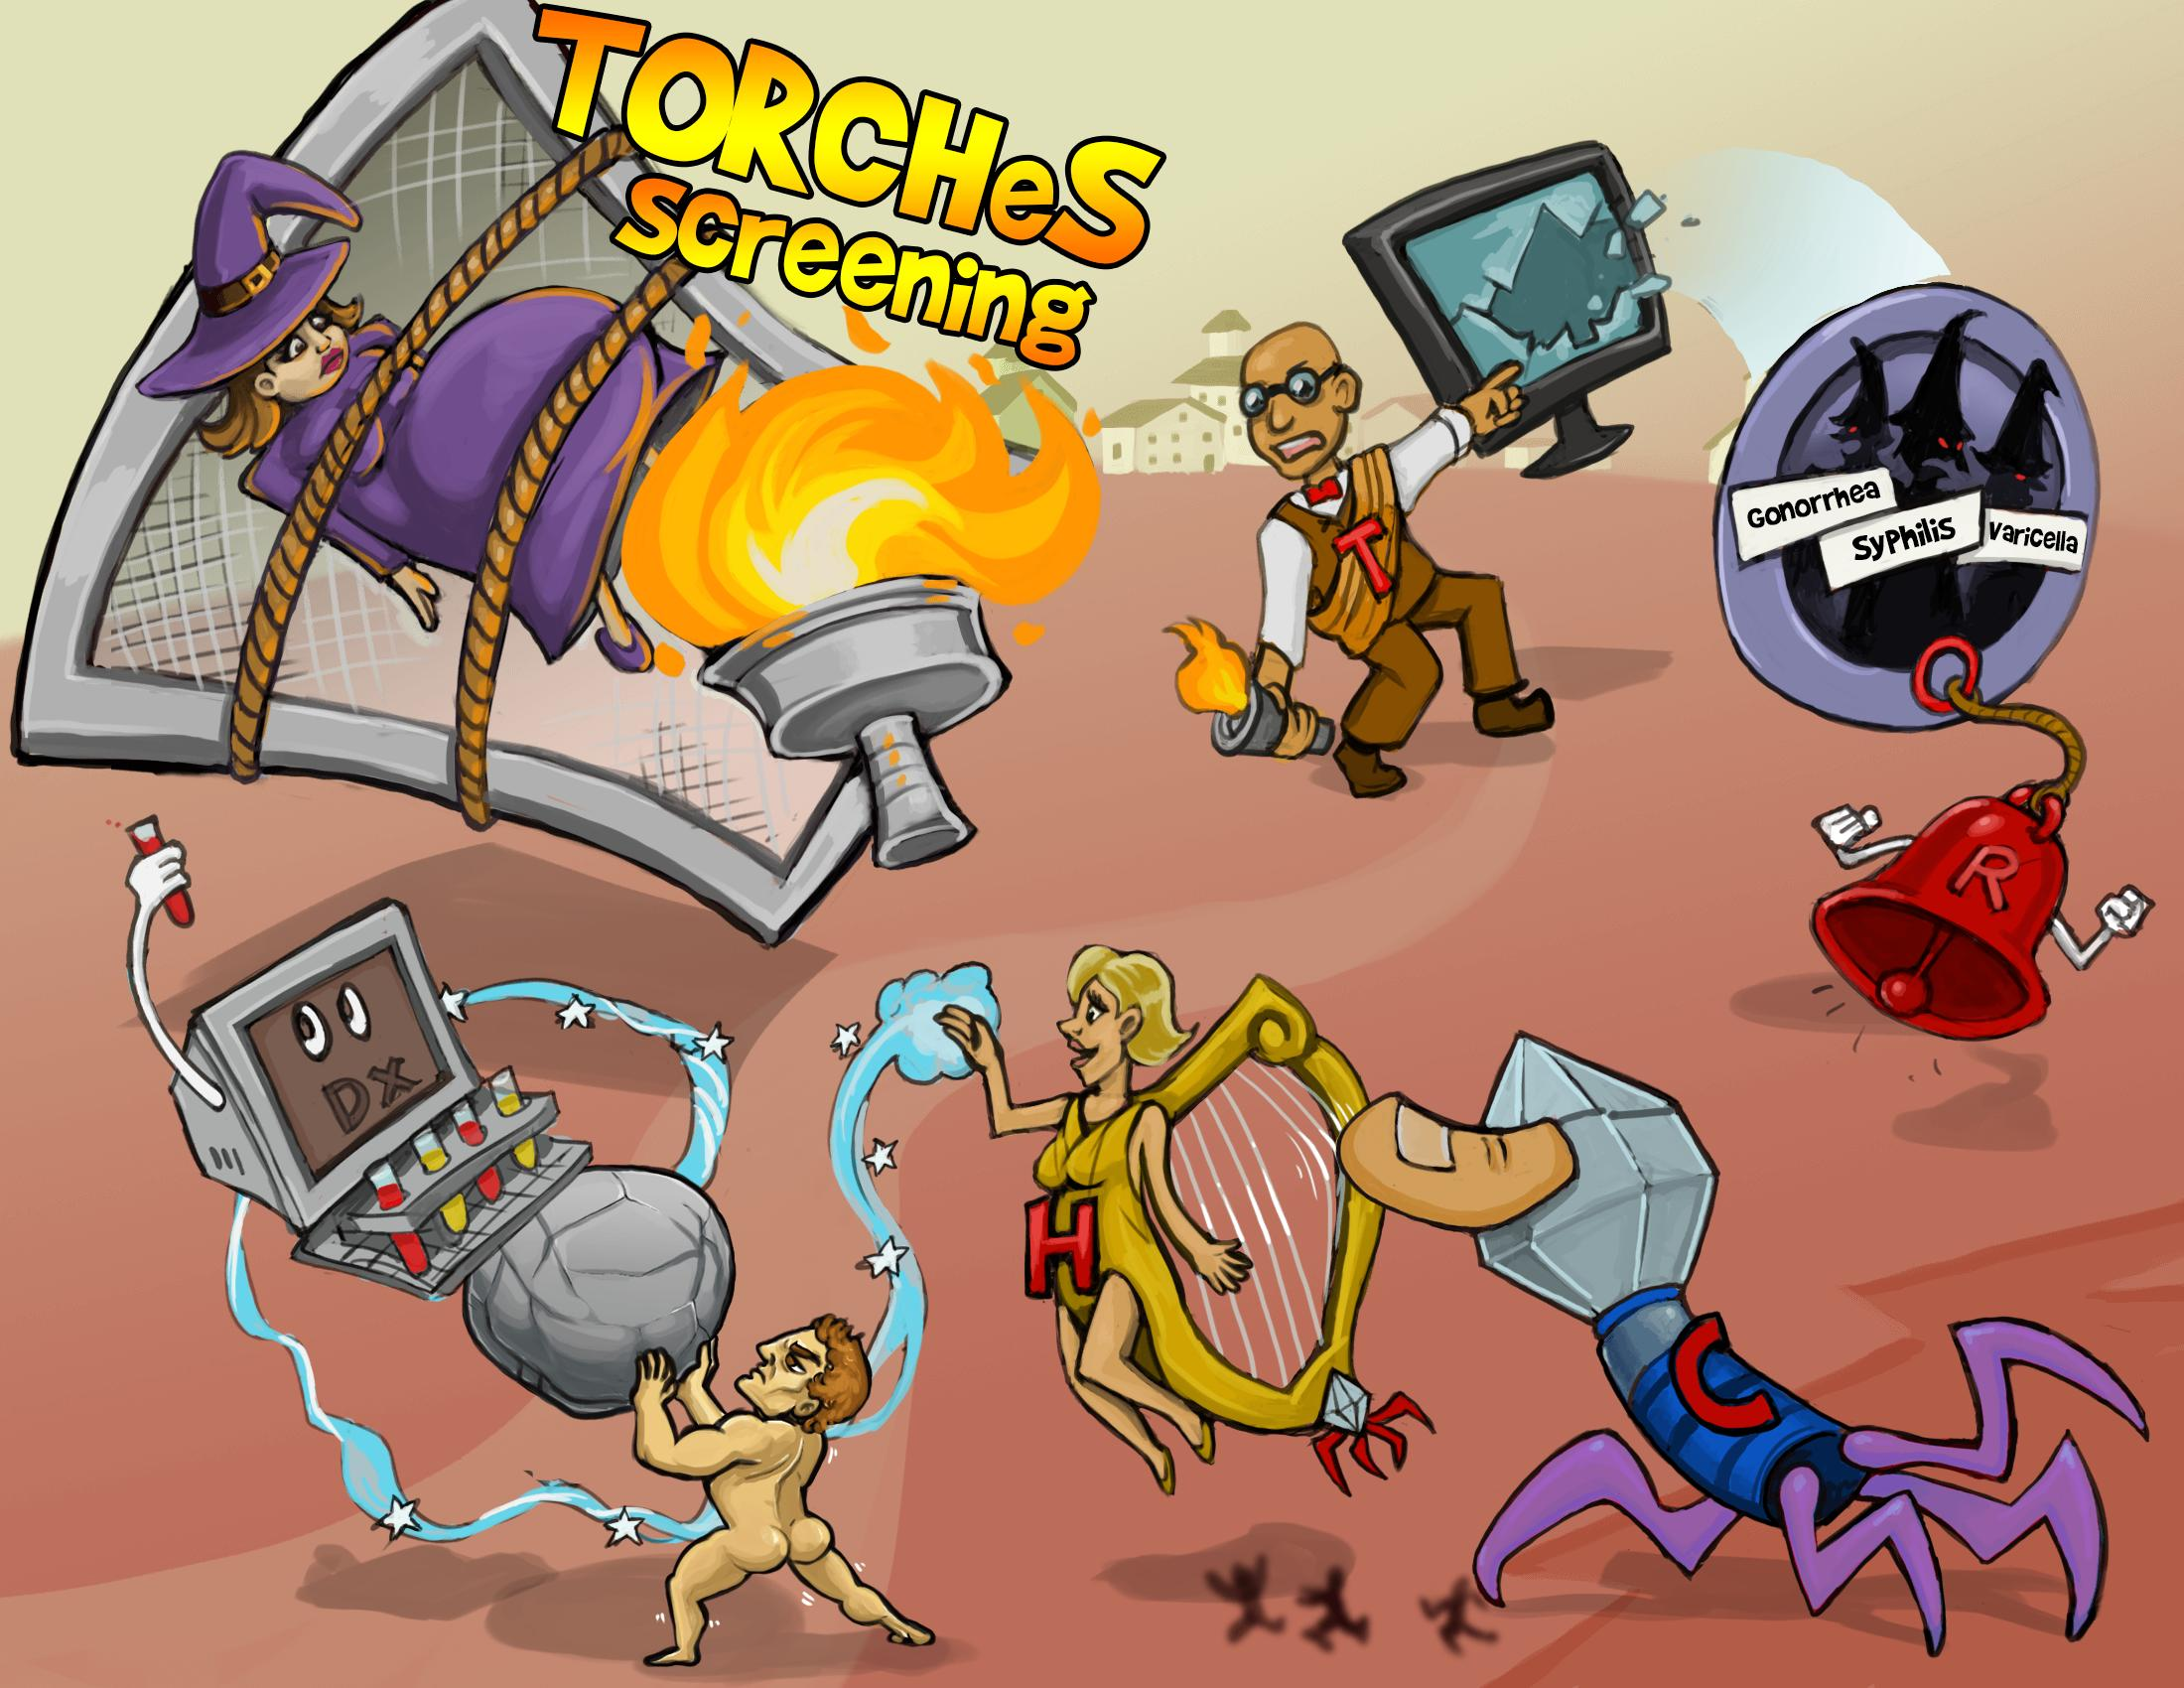 TORCHeS Screening